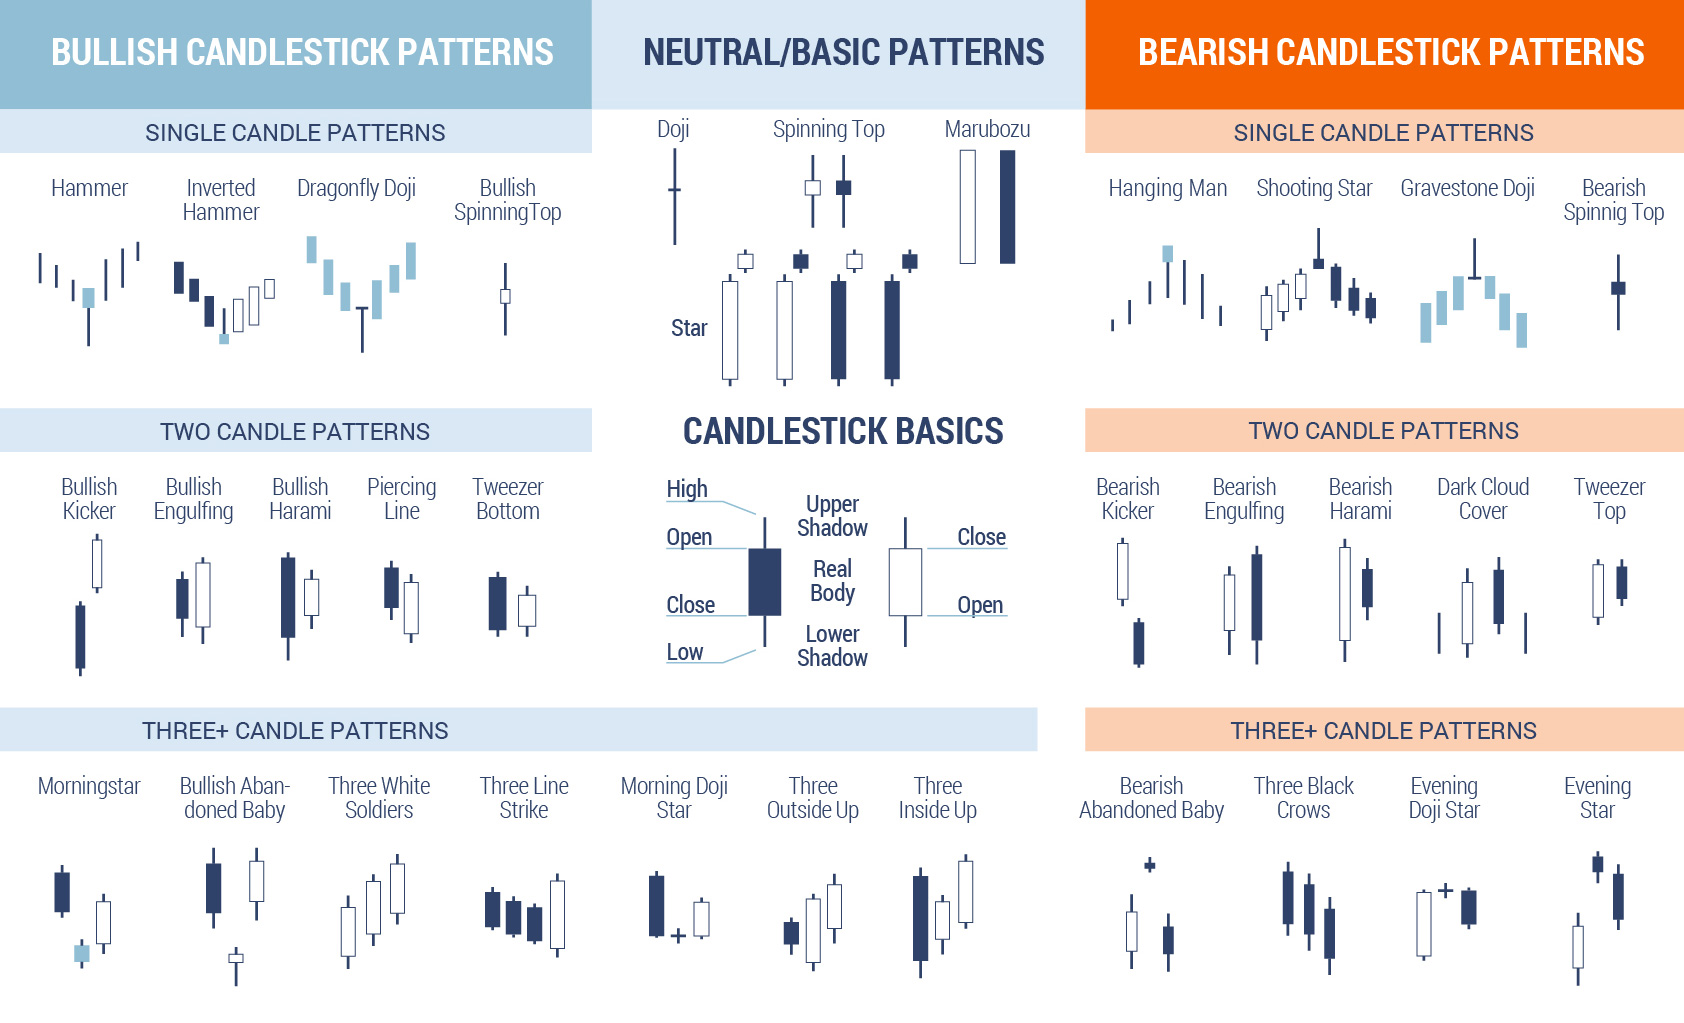 Common candlestick patterns.